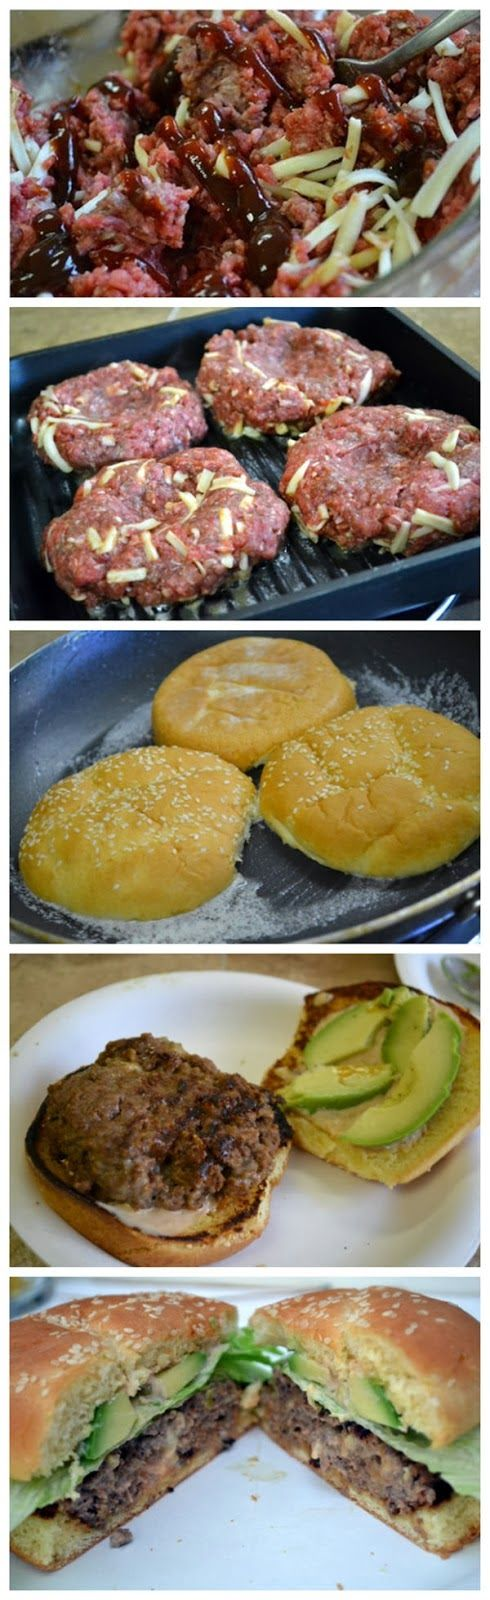 Best Burger Recipe Ever with Secret Sauce - and this one is made in a skillet! Perfect for winter.